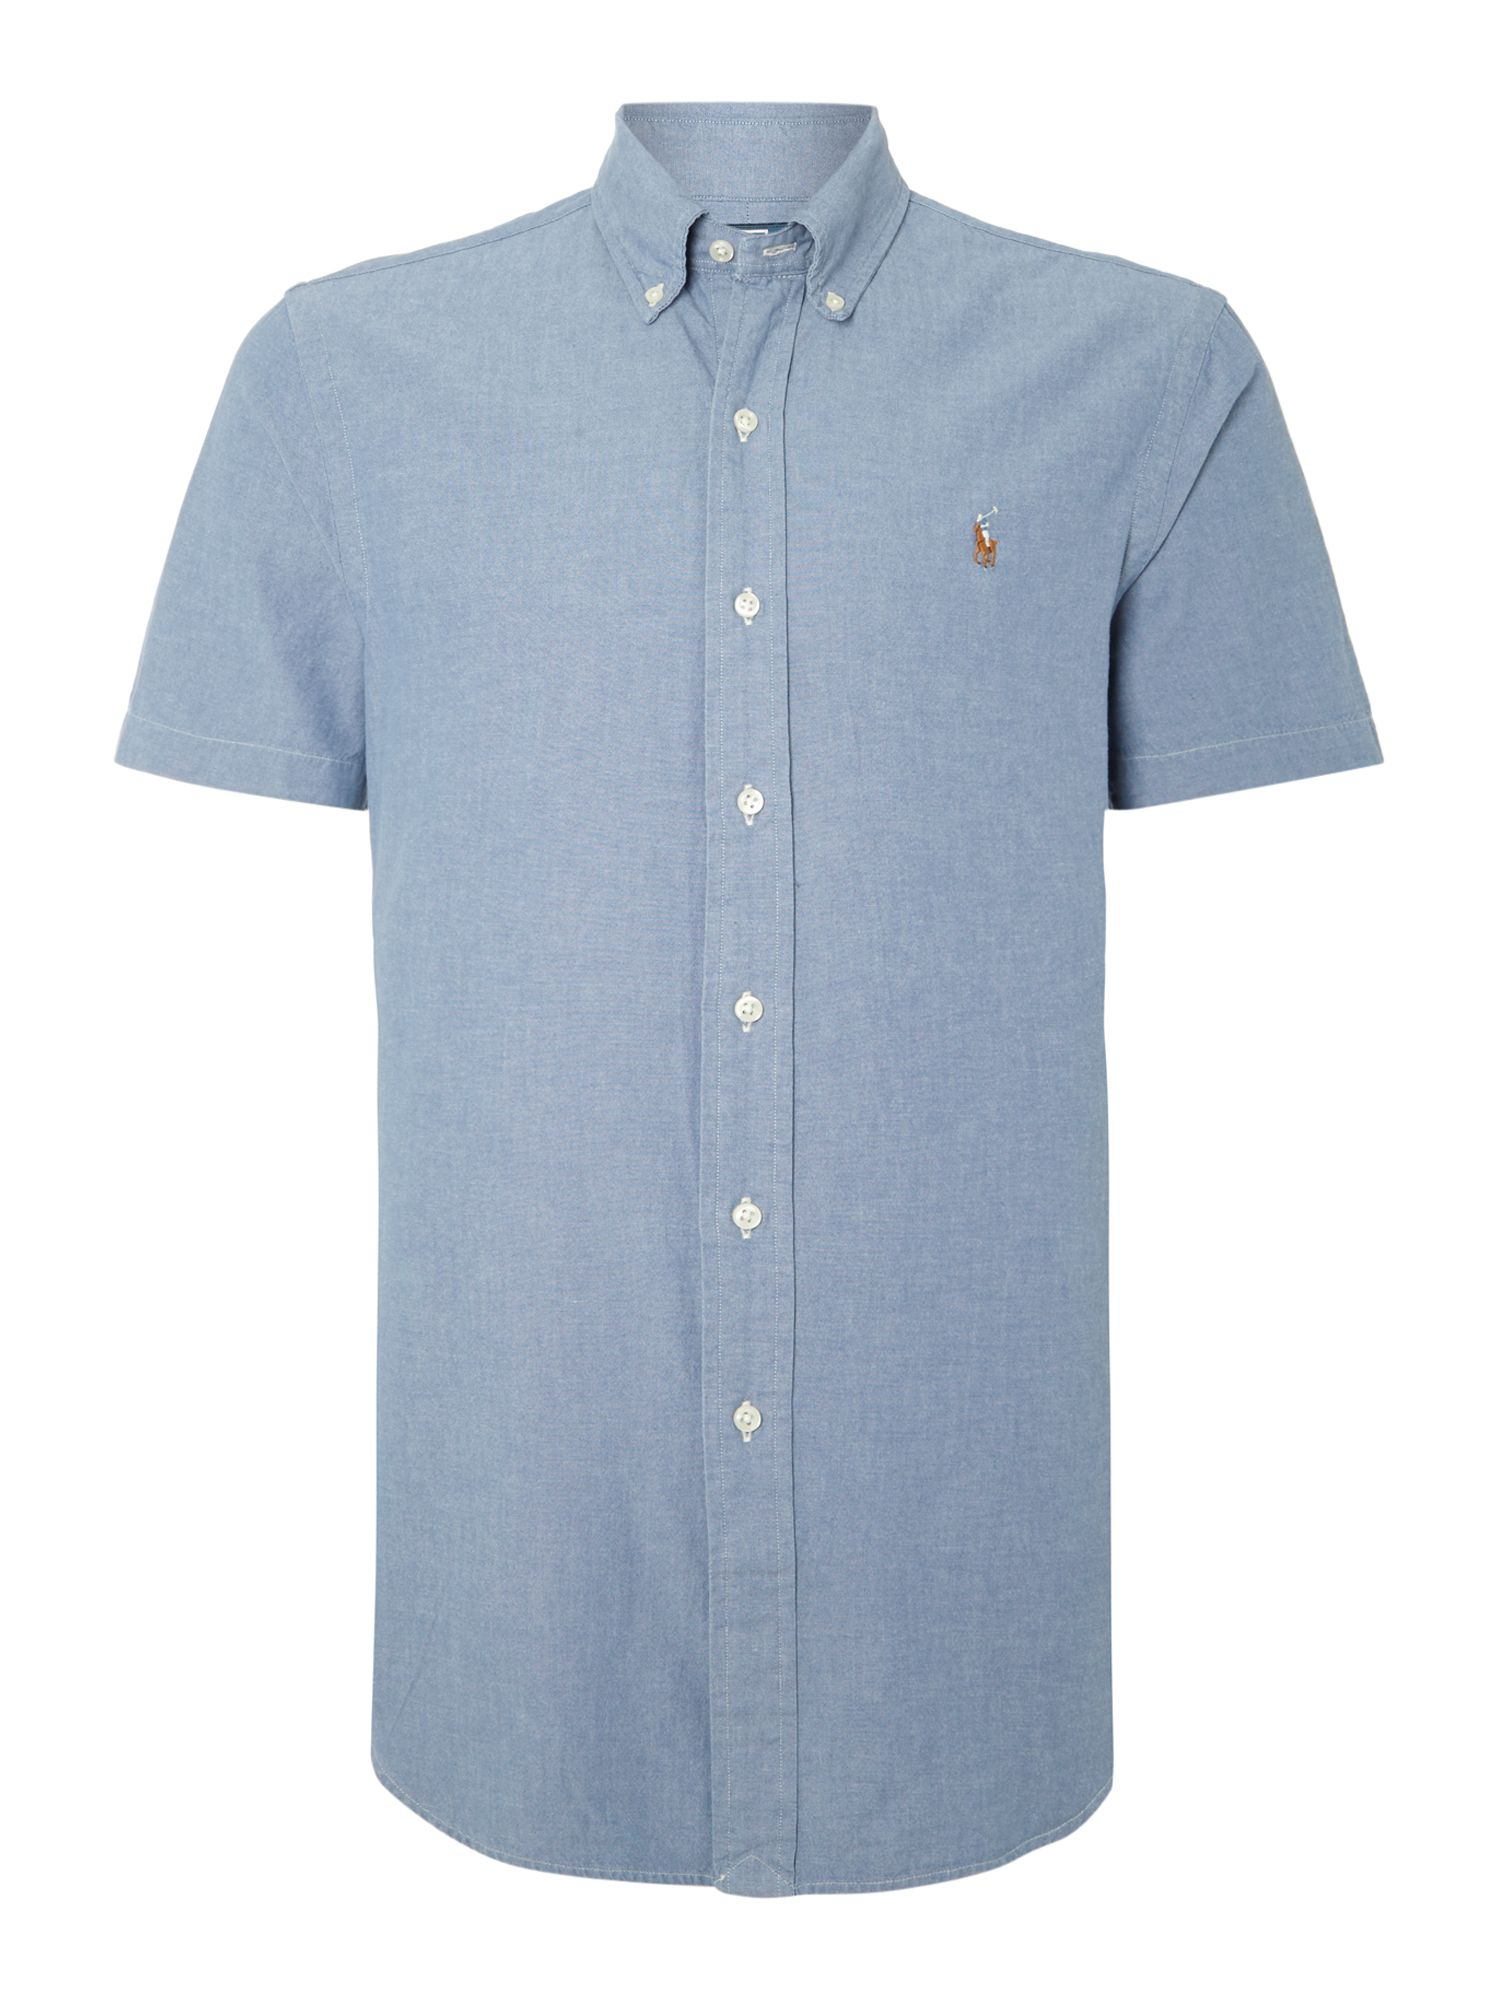 Polo ralph lauren Classic Short Sleeve Slim Fit Shirt in Blue for Men | Lyst